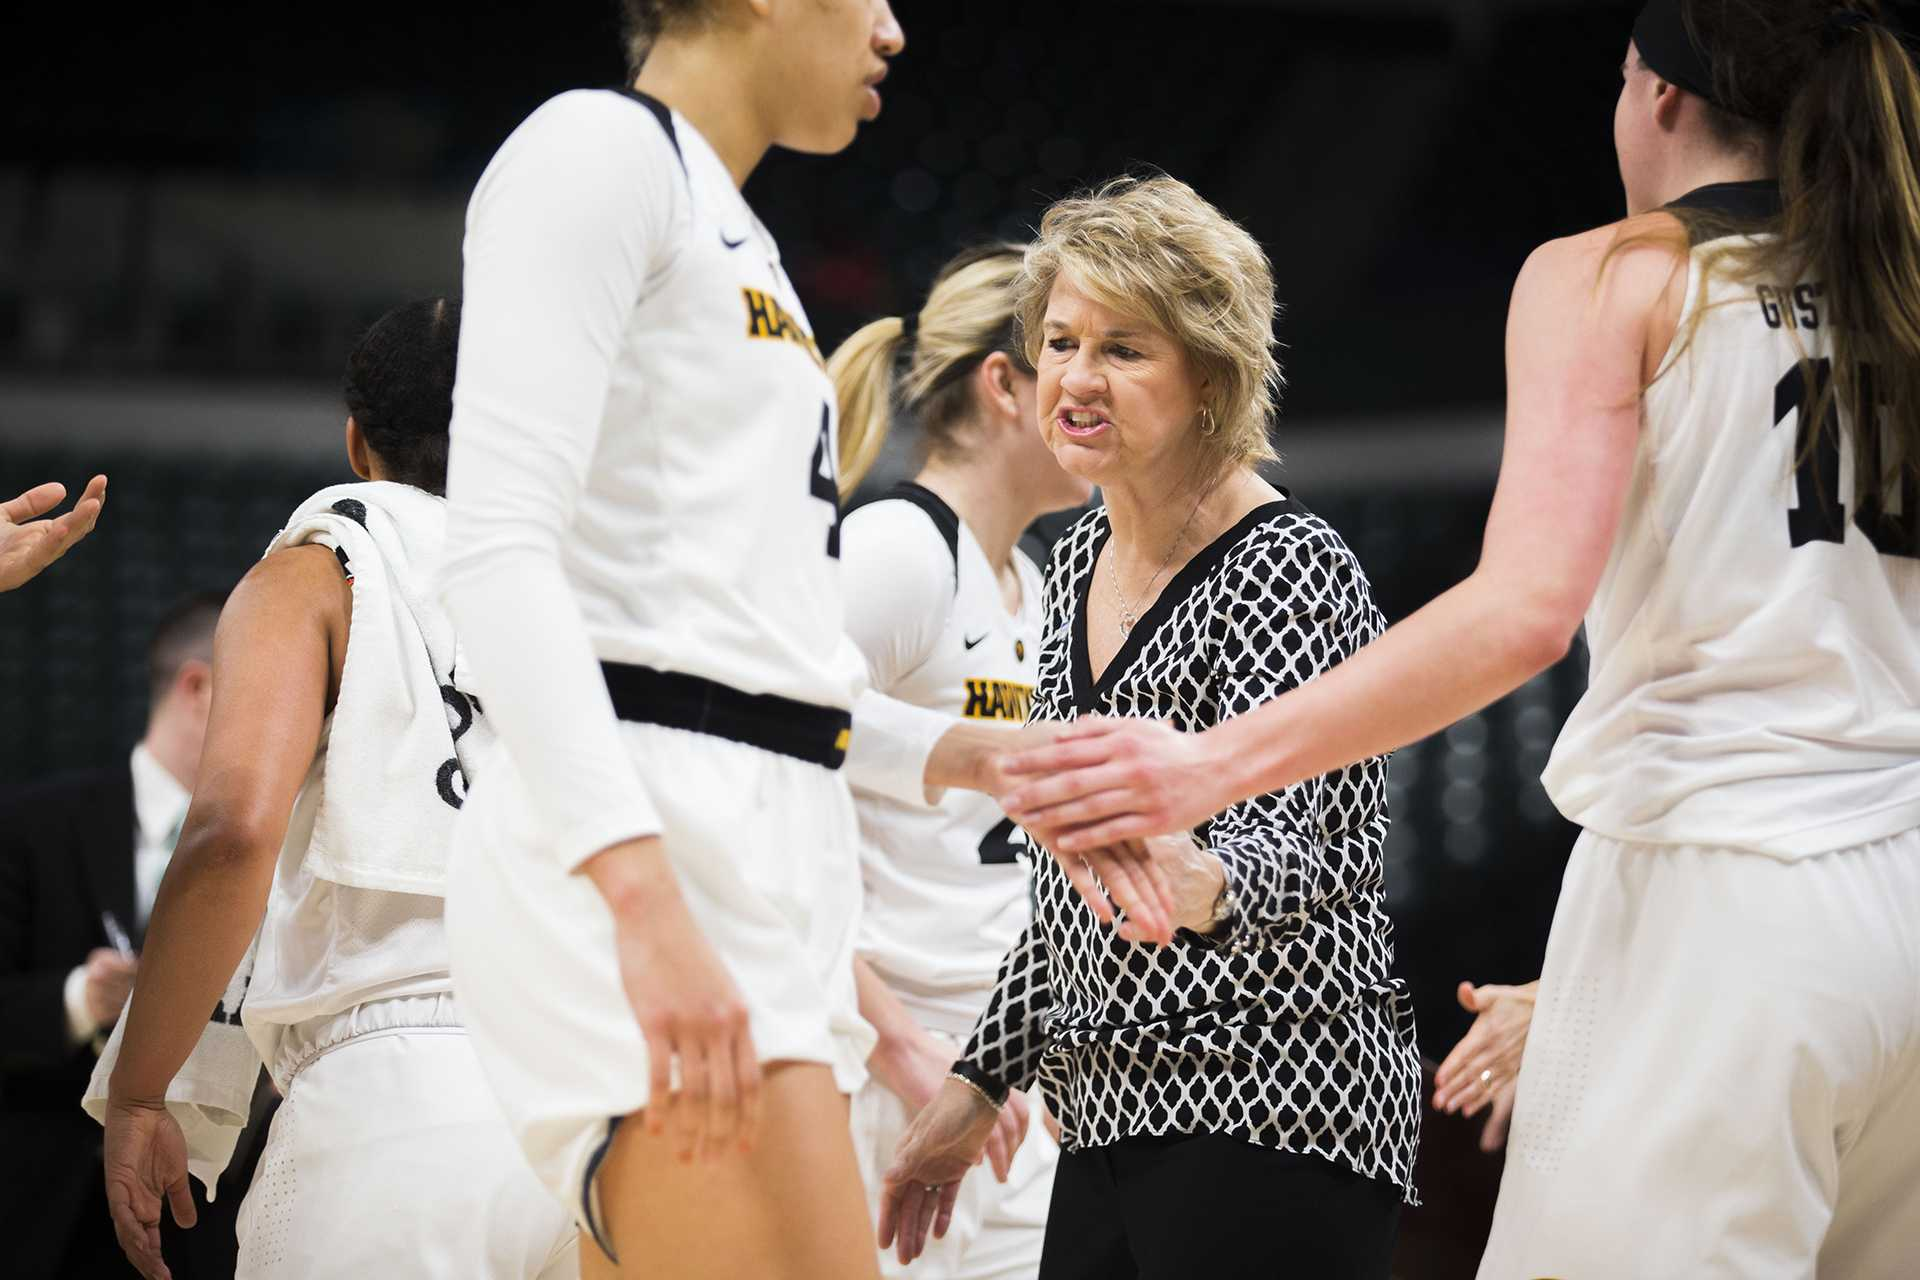 Iowa head coach Lisa Bluder talks to players during the Iowa/Northwestern Big Ten tournament basketball game at Bankers Life Fieldhouse in Indianapolis on Thursday, March, 1, 2018. The Hawkeyes defeated the Wildcats, 55-45. Iowa takes on No.4 Minnesota on Friday. (Lily Smith/The Daily Iowan)